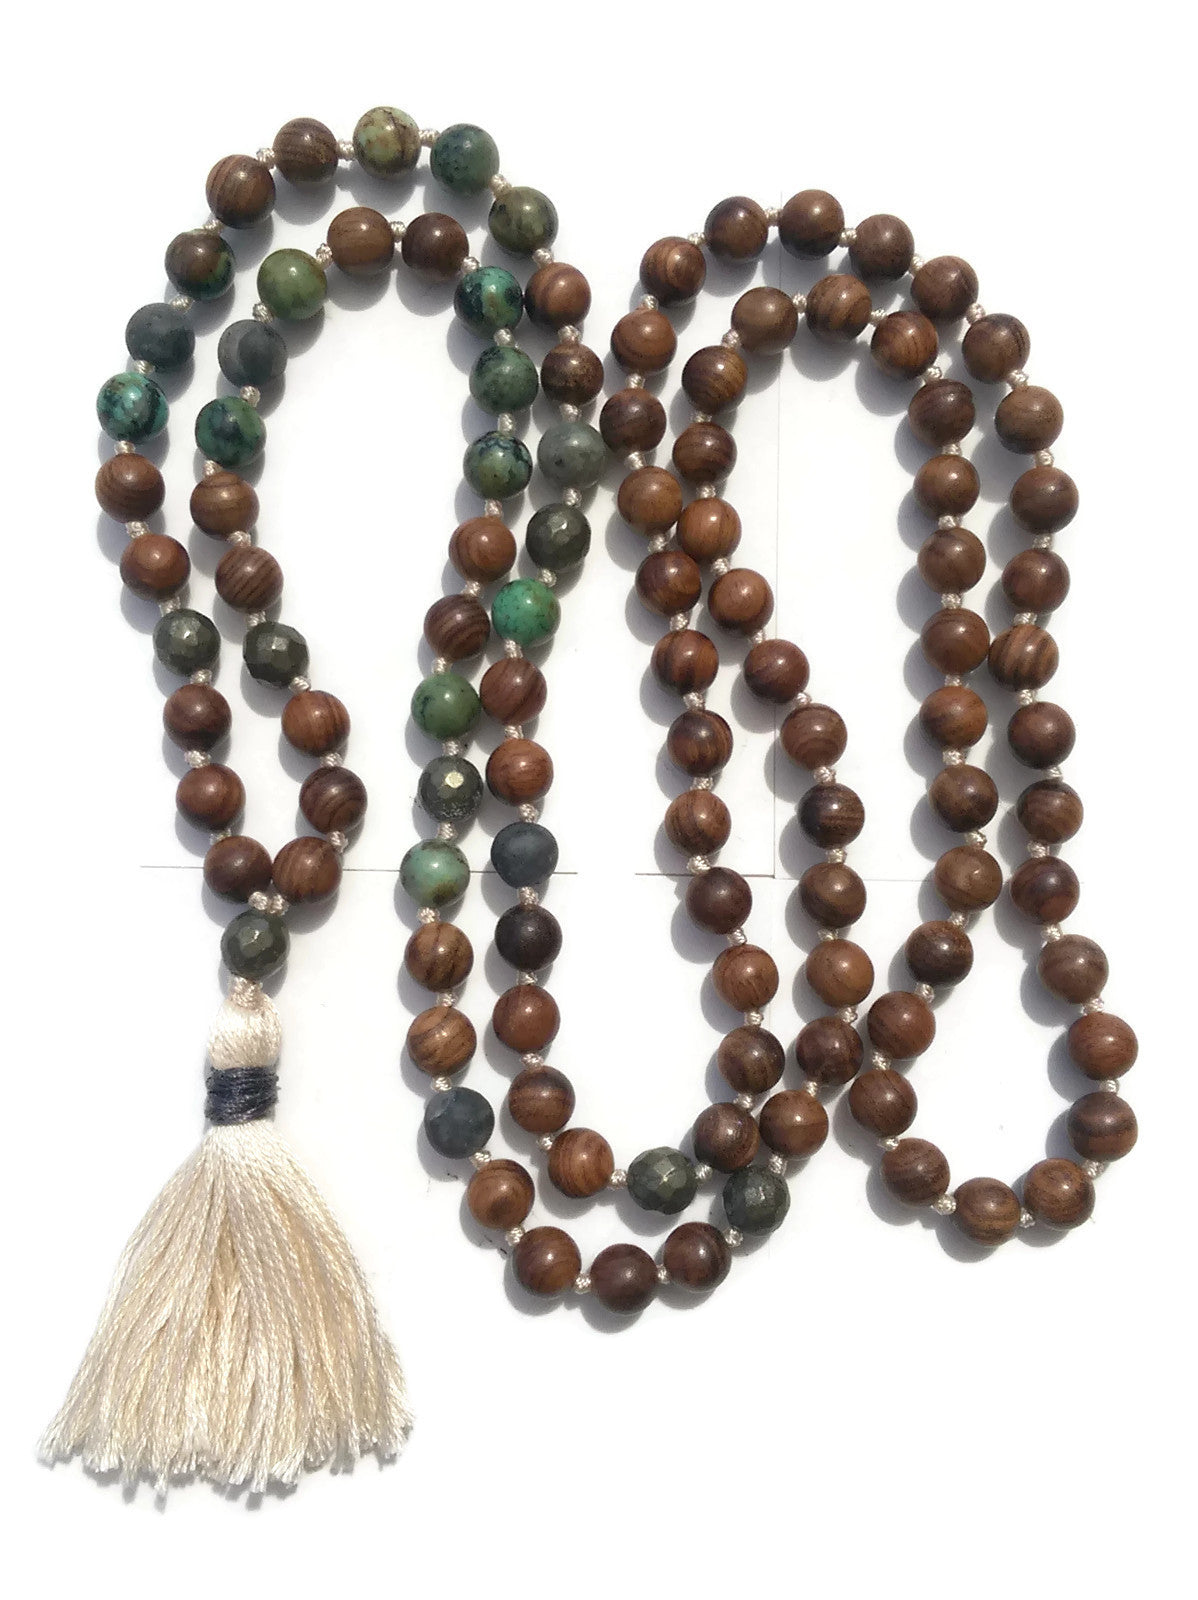 Pure Collection 8mm Pear Wood African Turquoise Labradorite Pyrite Traditional Hand Knotted 108 Bead Meditation Mala Necklace Heart Chakra